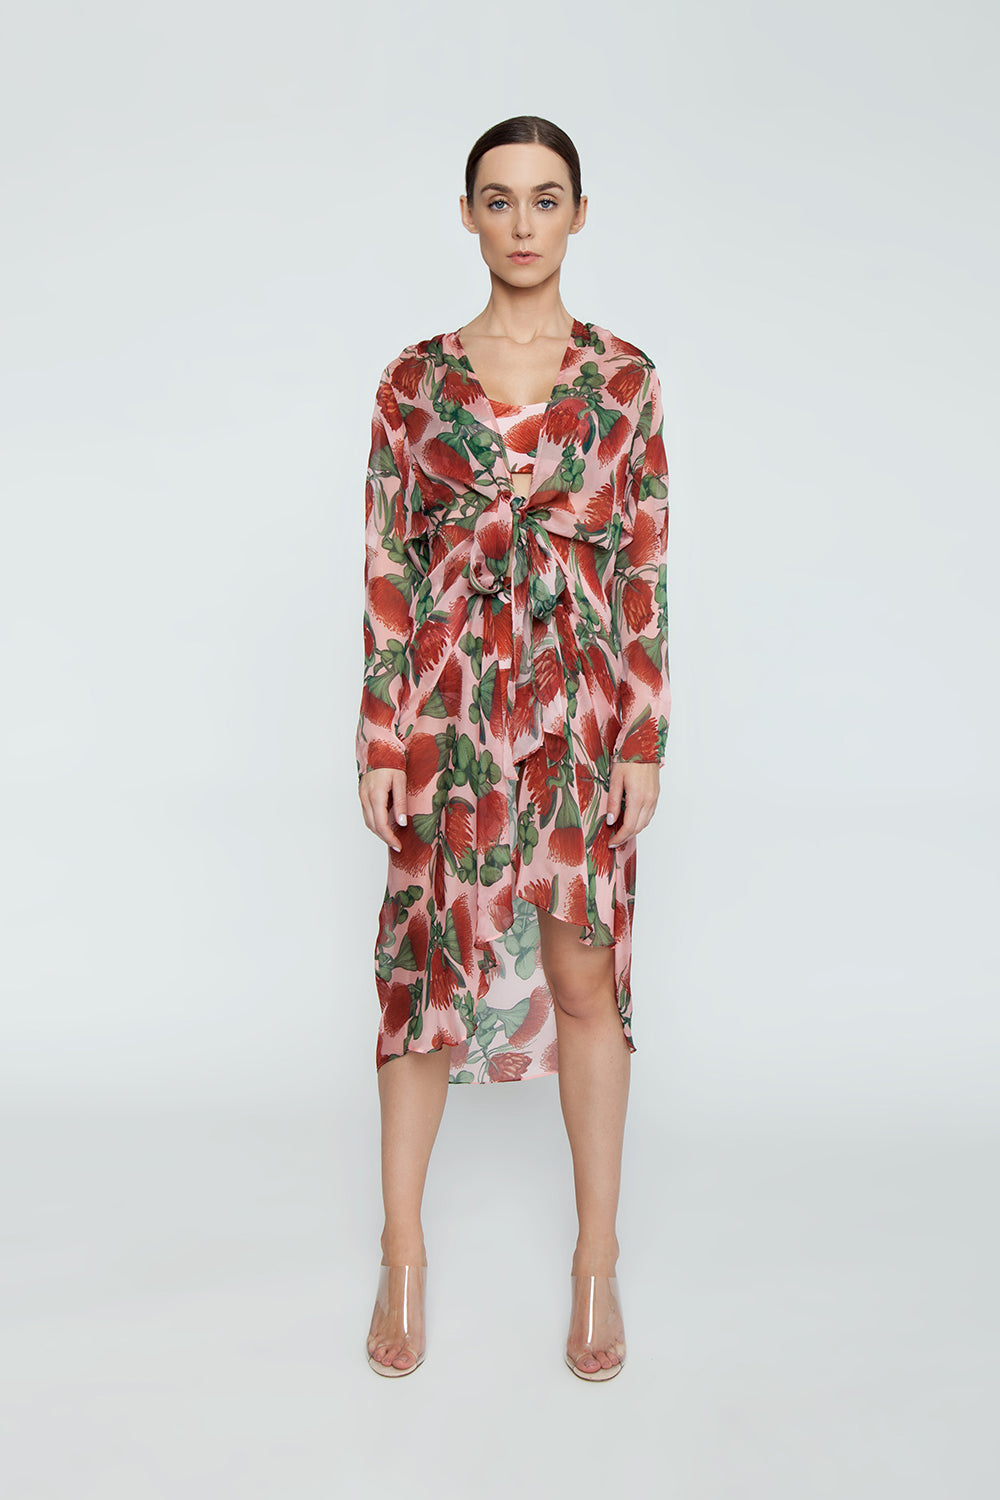 48dcb694f9 ... ADRIANA DEGREAS Silk Muslin Long Robe Cover-Up - Fiore Rose Print -  undefined undefined Quick View